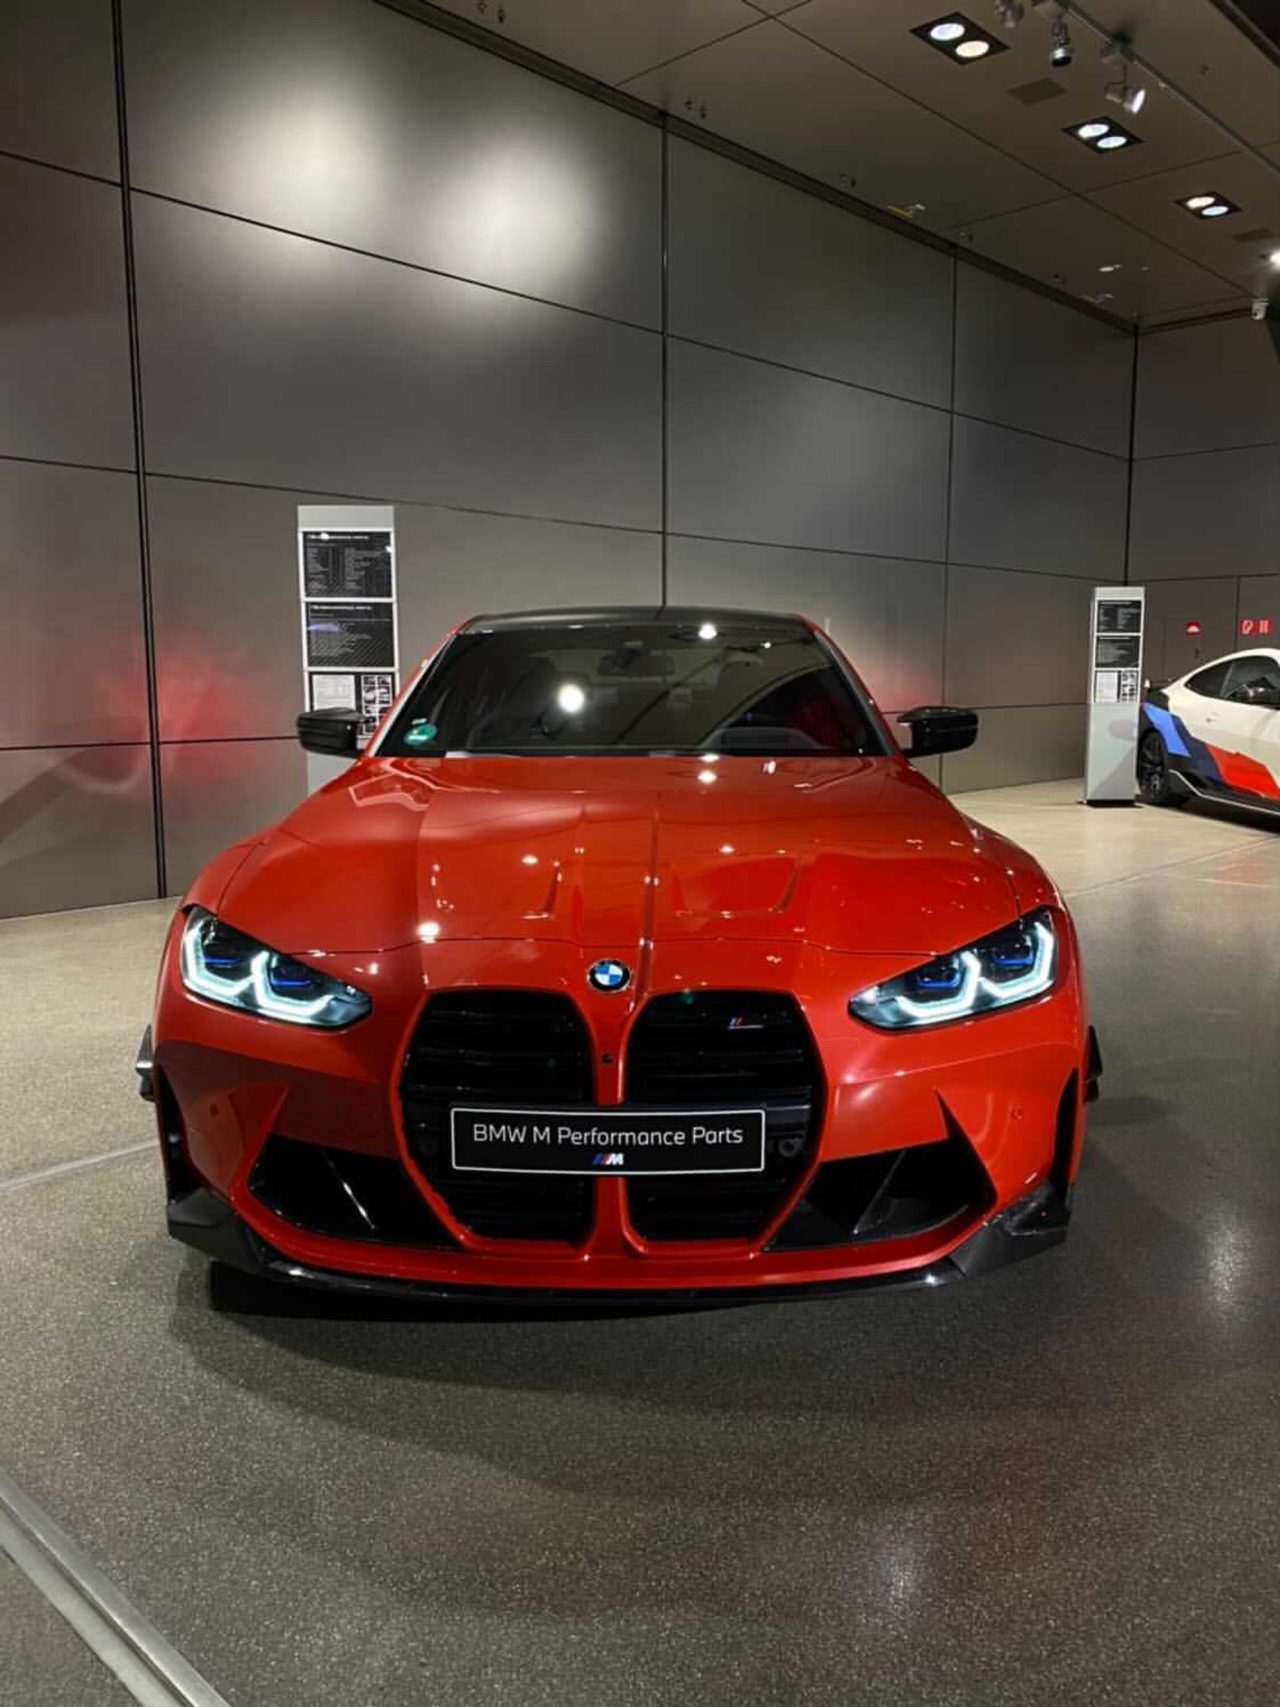 2021-bmw-m3-m-performance-parts-red-color-06-1280x1707.jpg